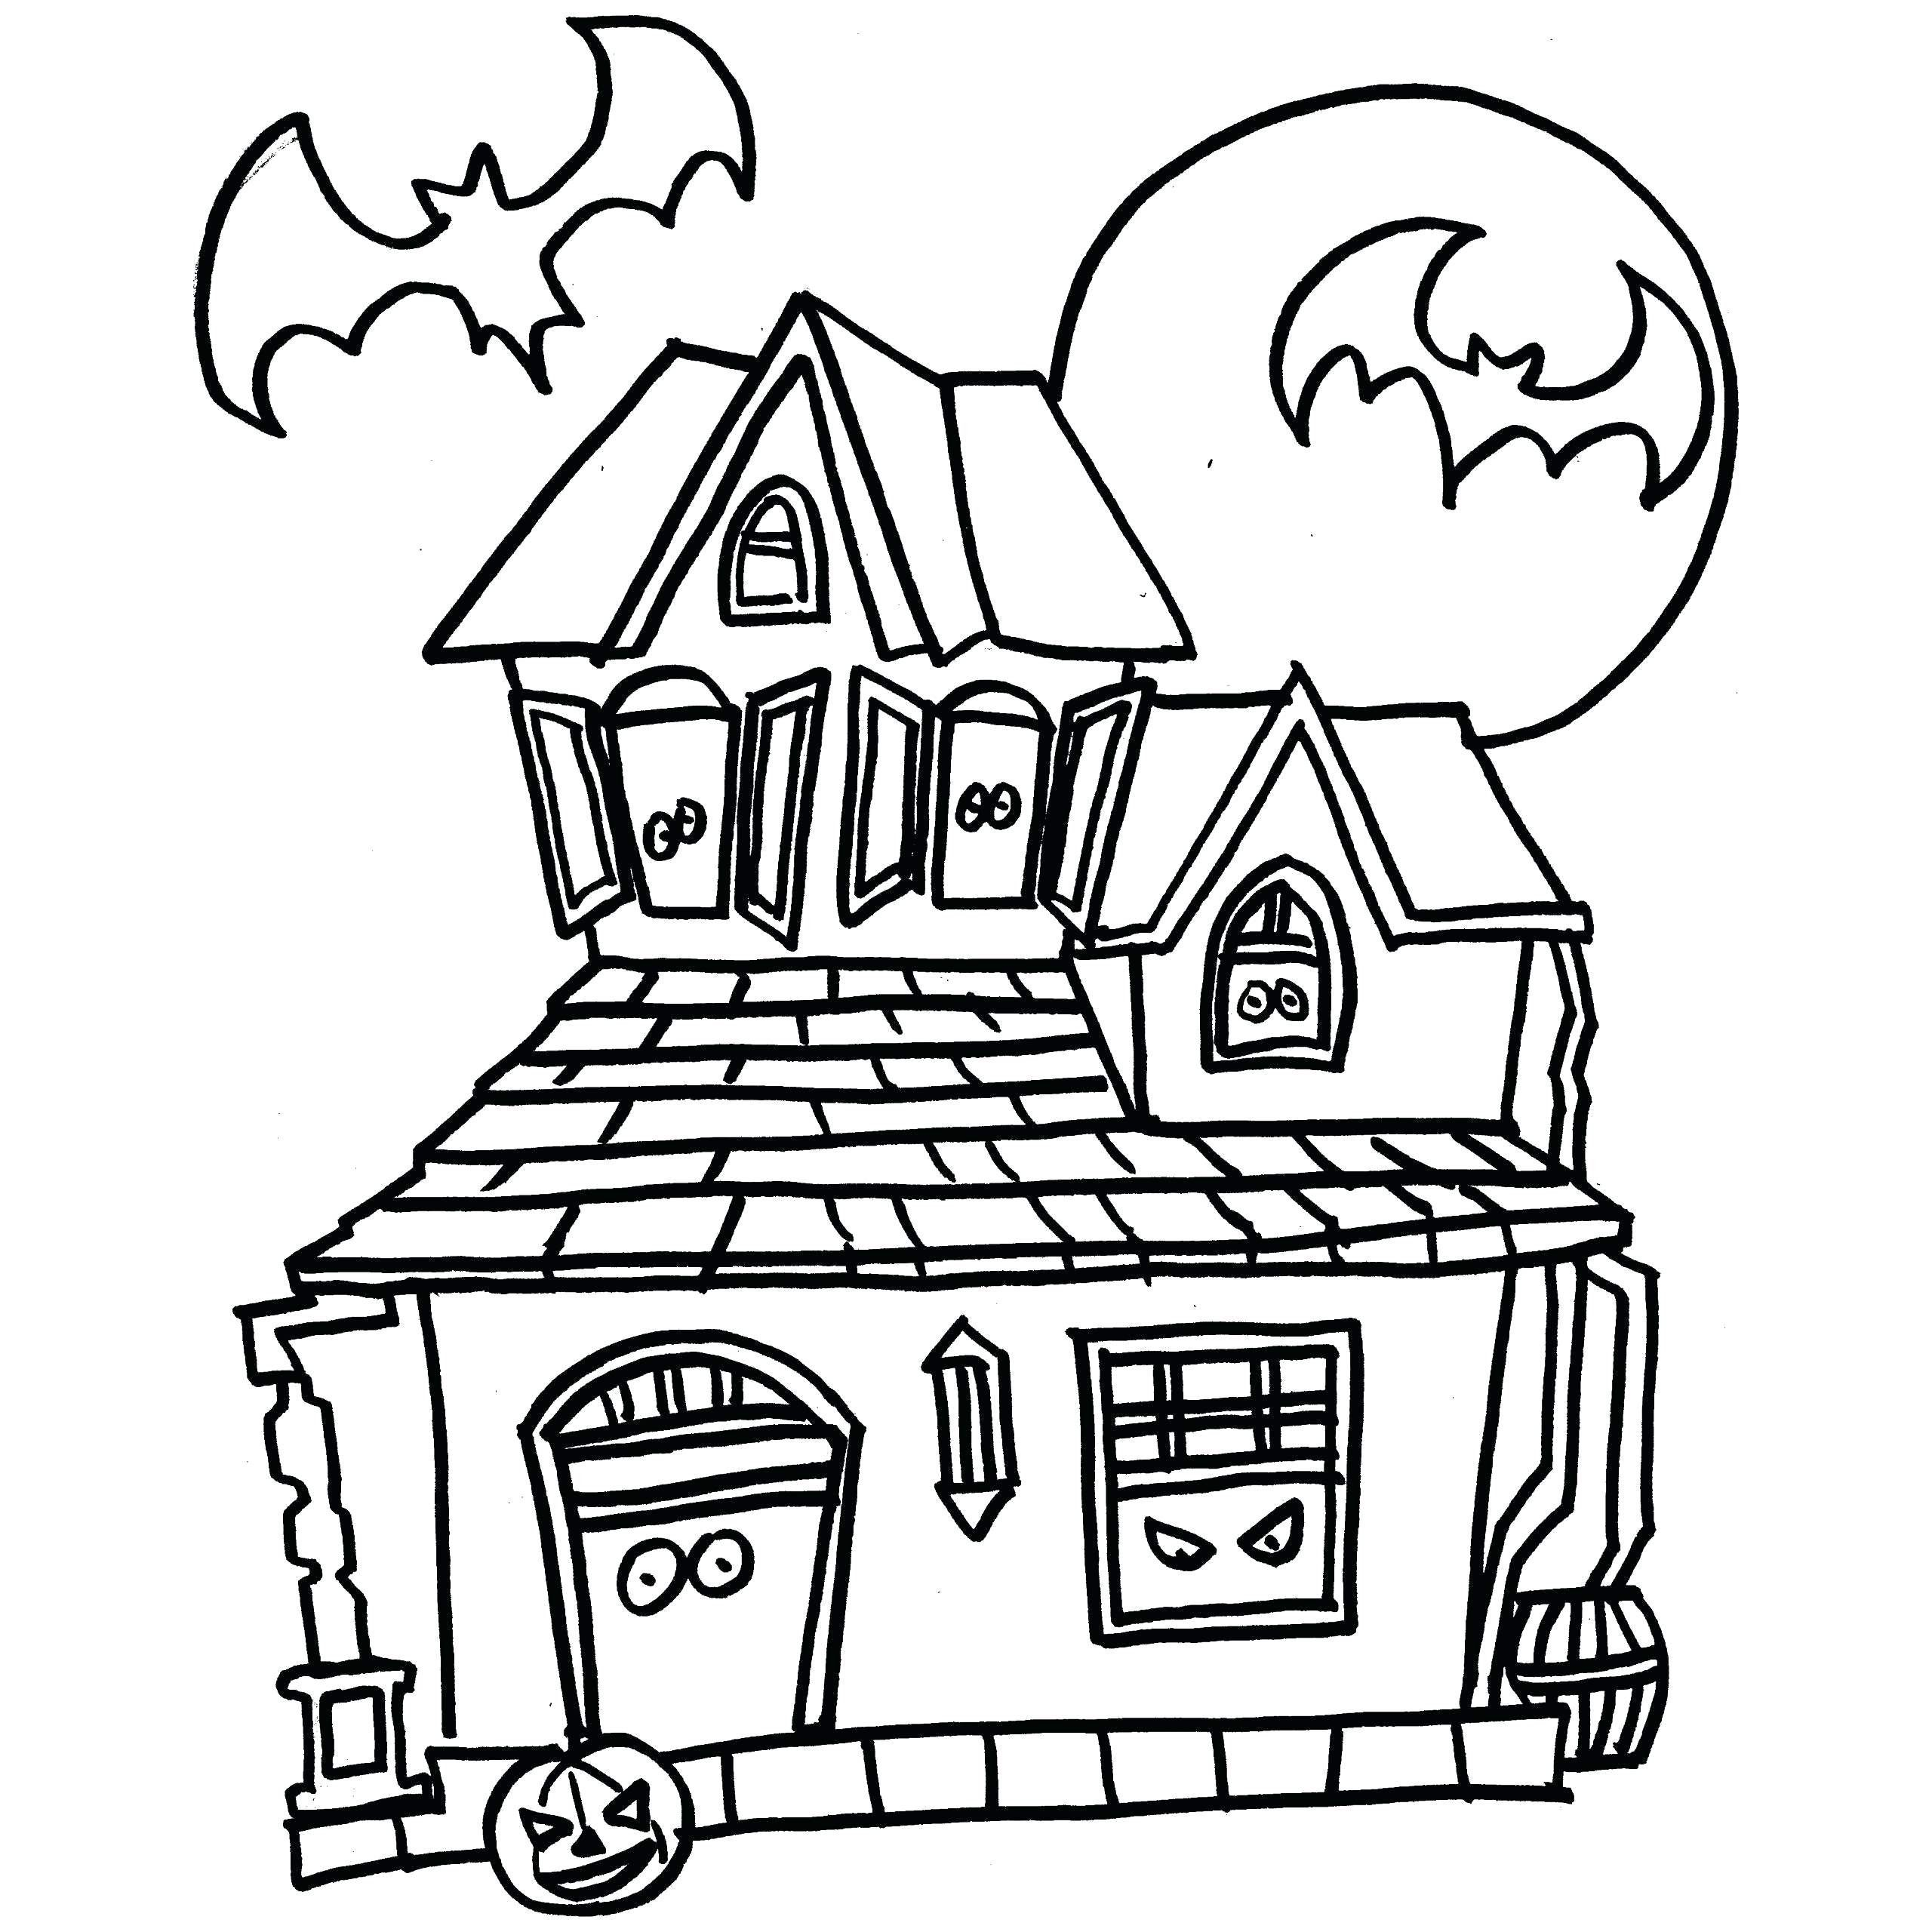 Haunted House Coloring Pages Free Halloween Haunted House Coloring Pages At Getdrawings Entitlementtrap Com House Colouring Pages Free Halloween Coloring Pages Coloring Pages Inspirational